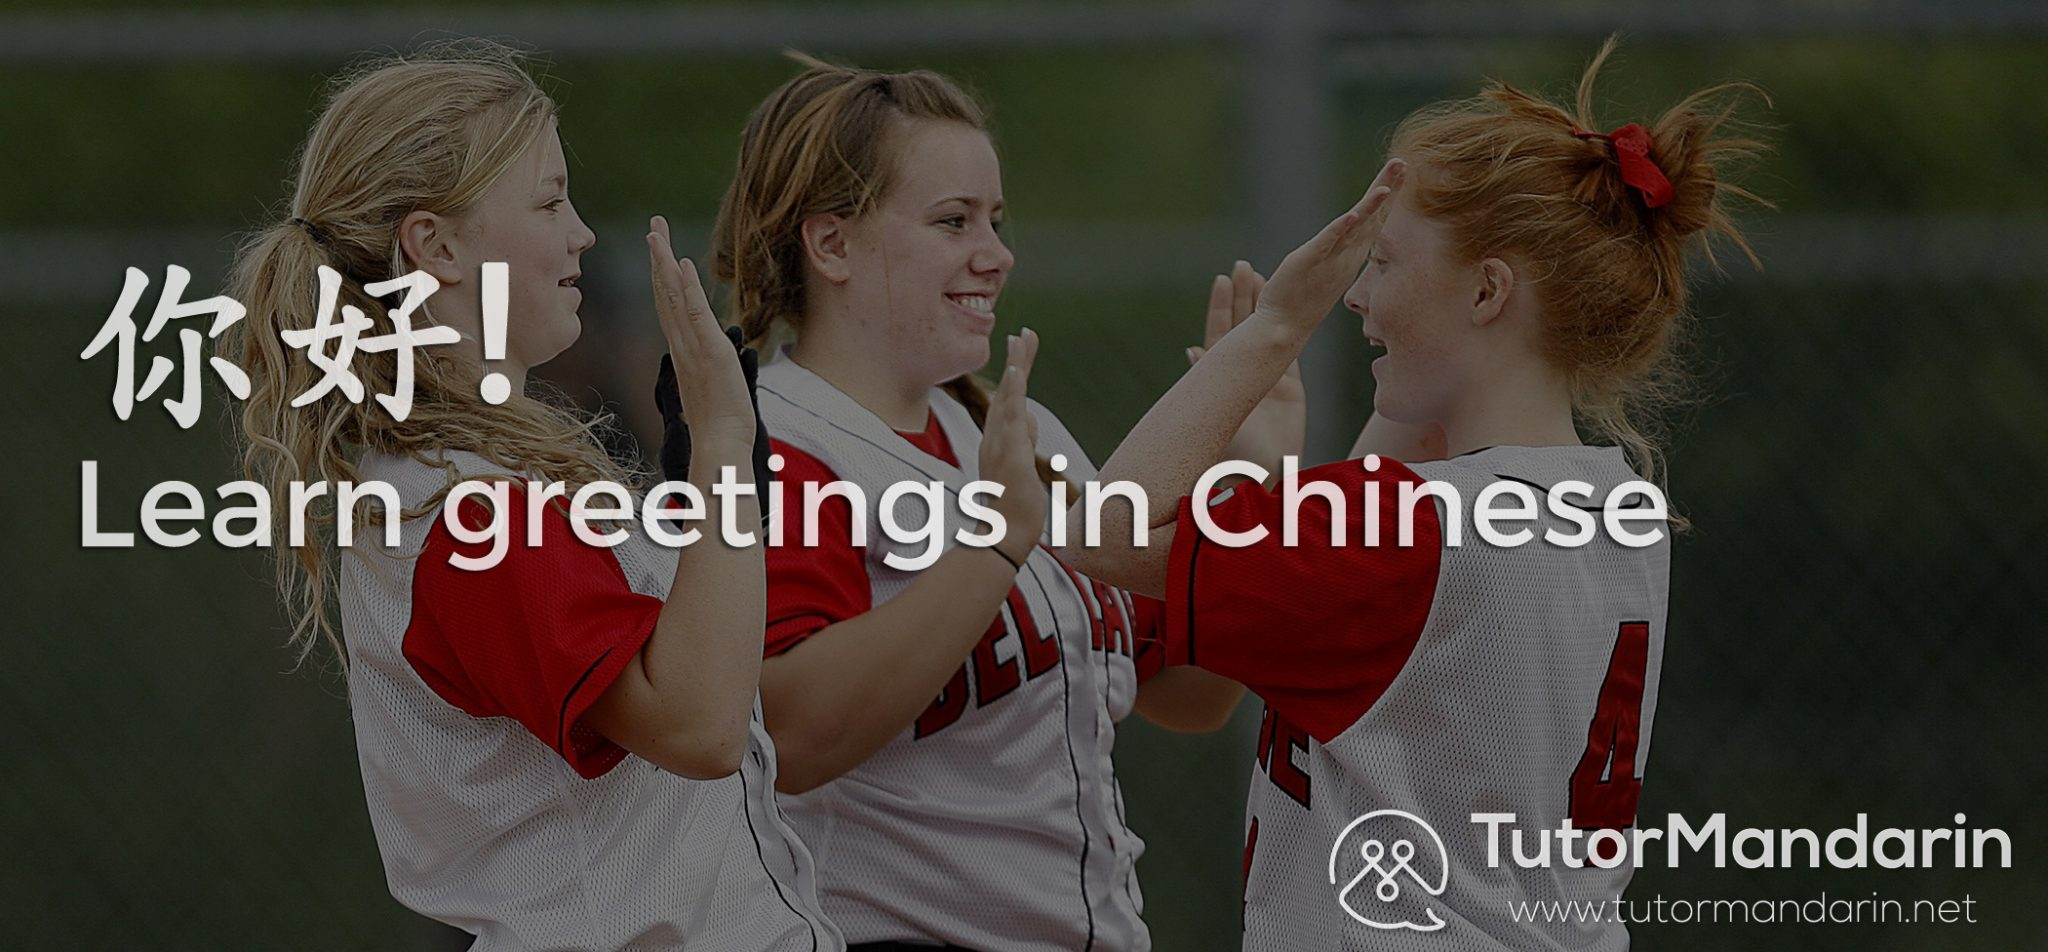 Greetings friends in Chinese